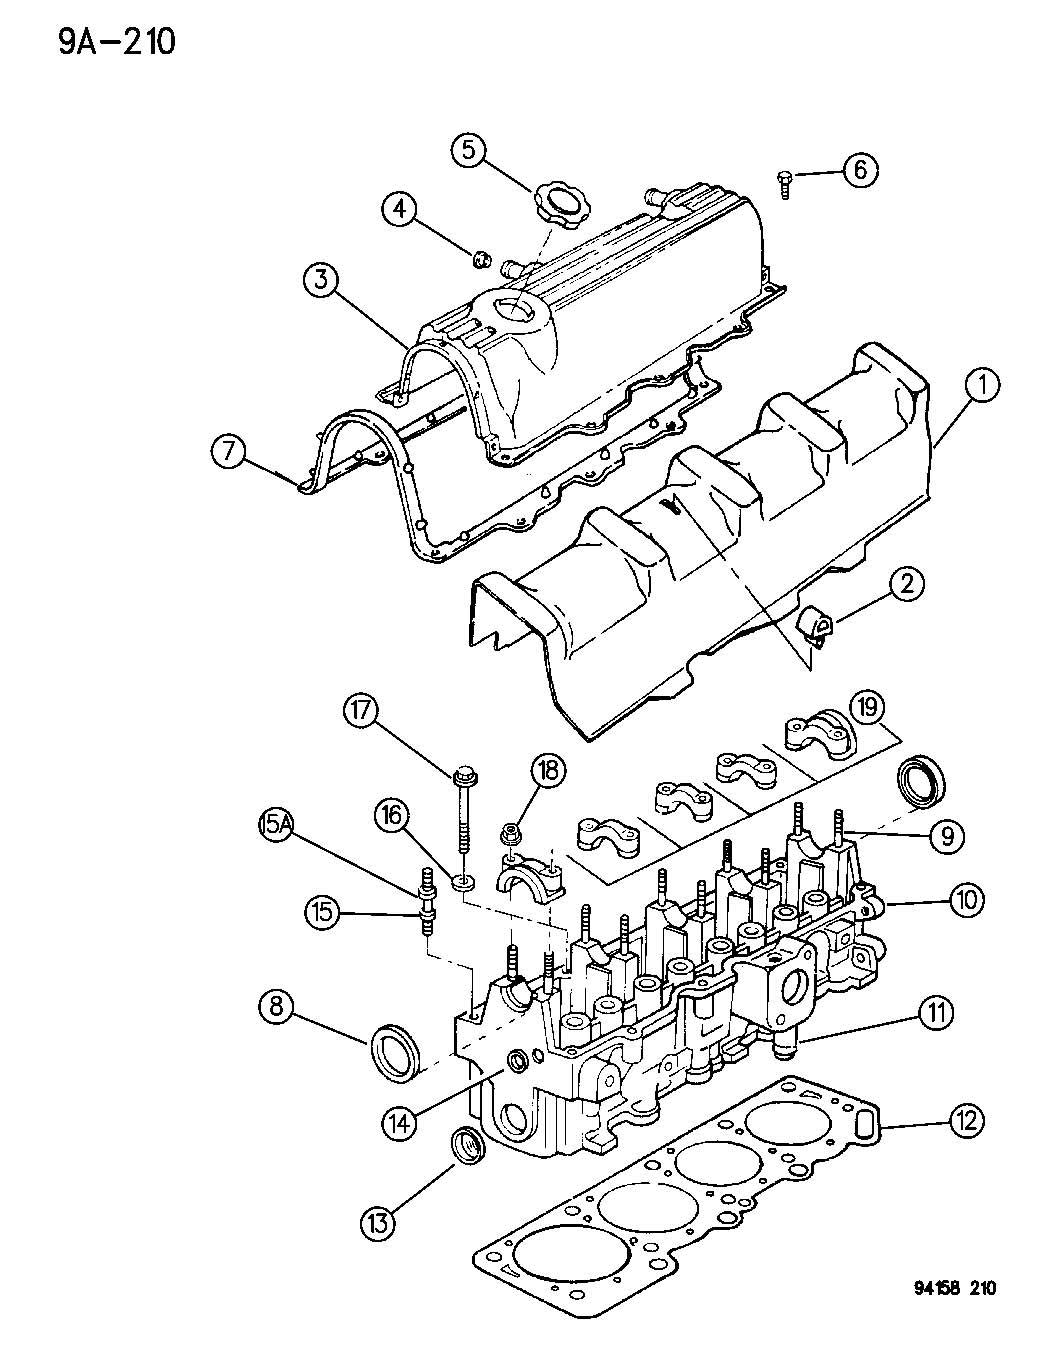 Chrysler Sebring Head Bolt Removal Diagram